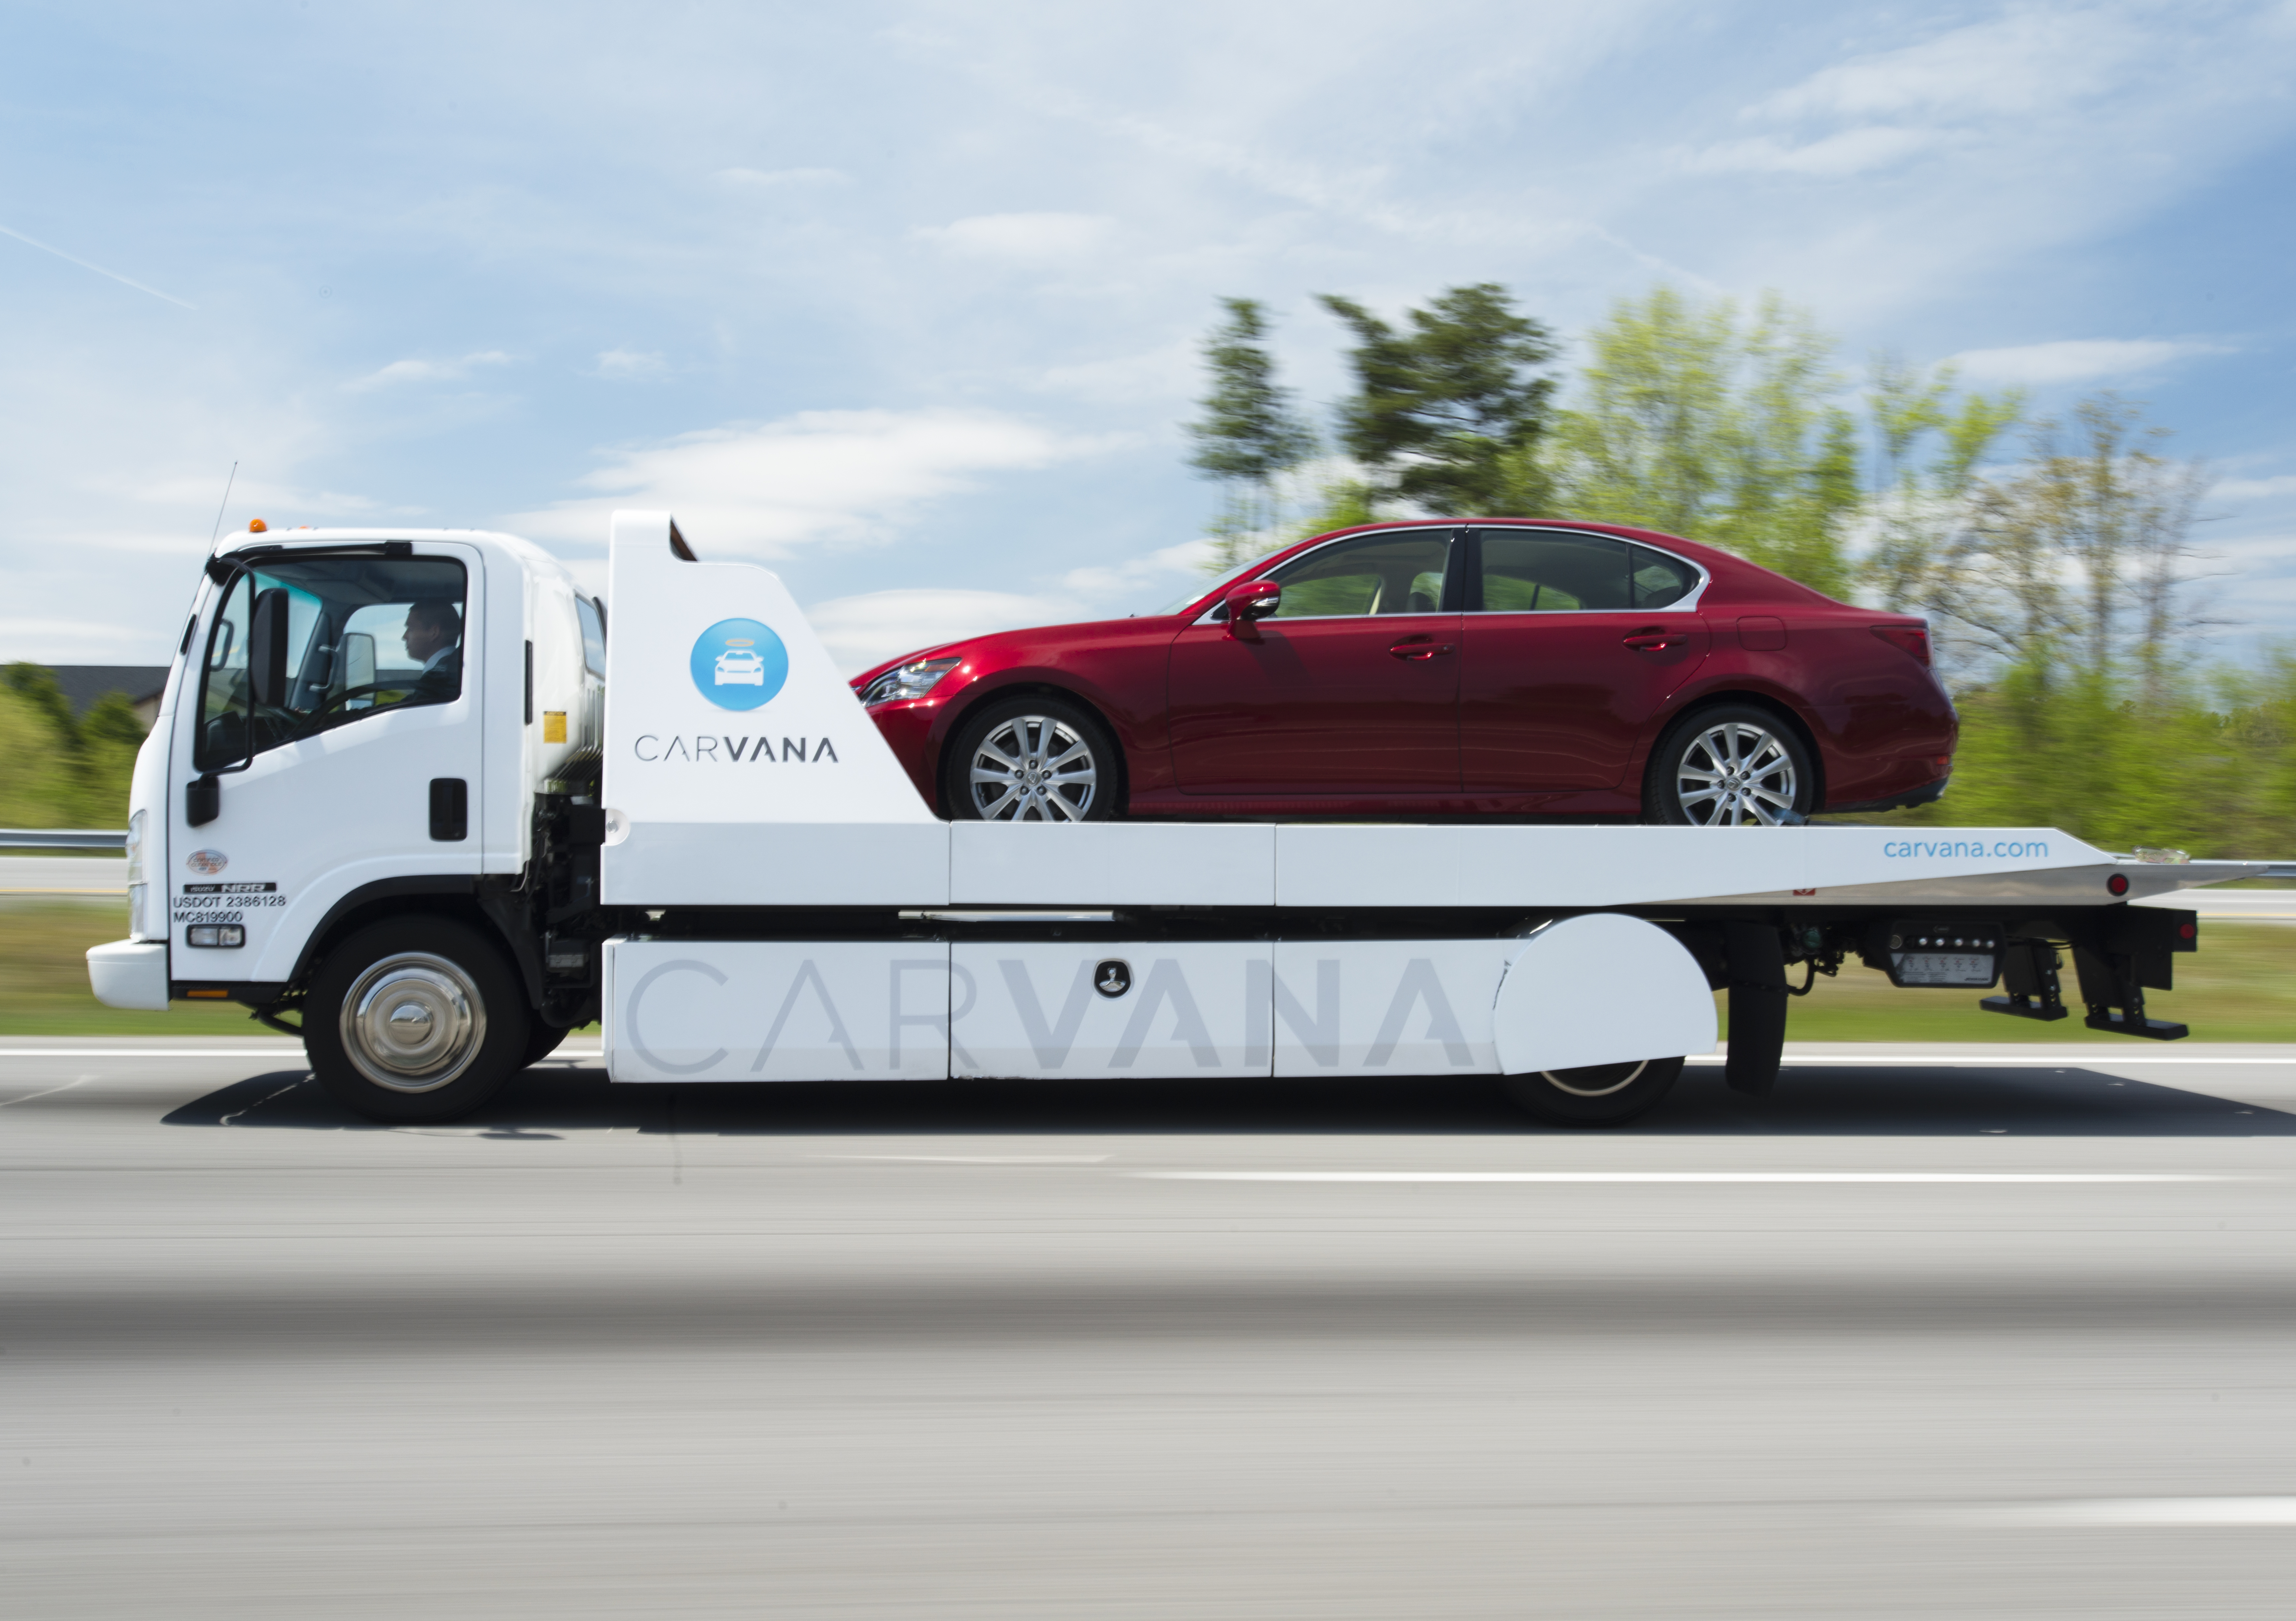 Carvana Launches in Indianapolis the pany s First Market in the